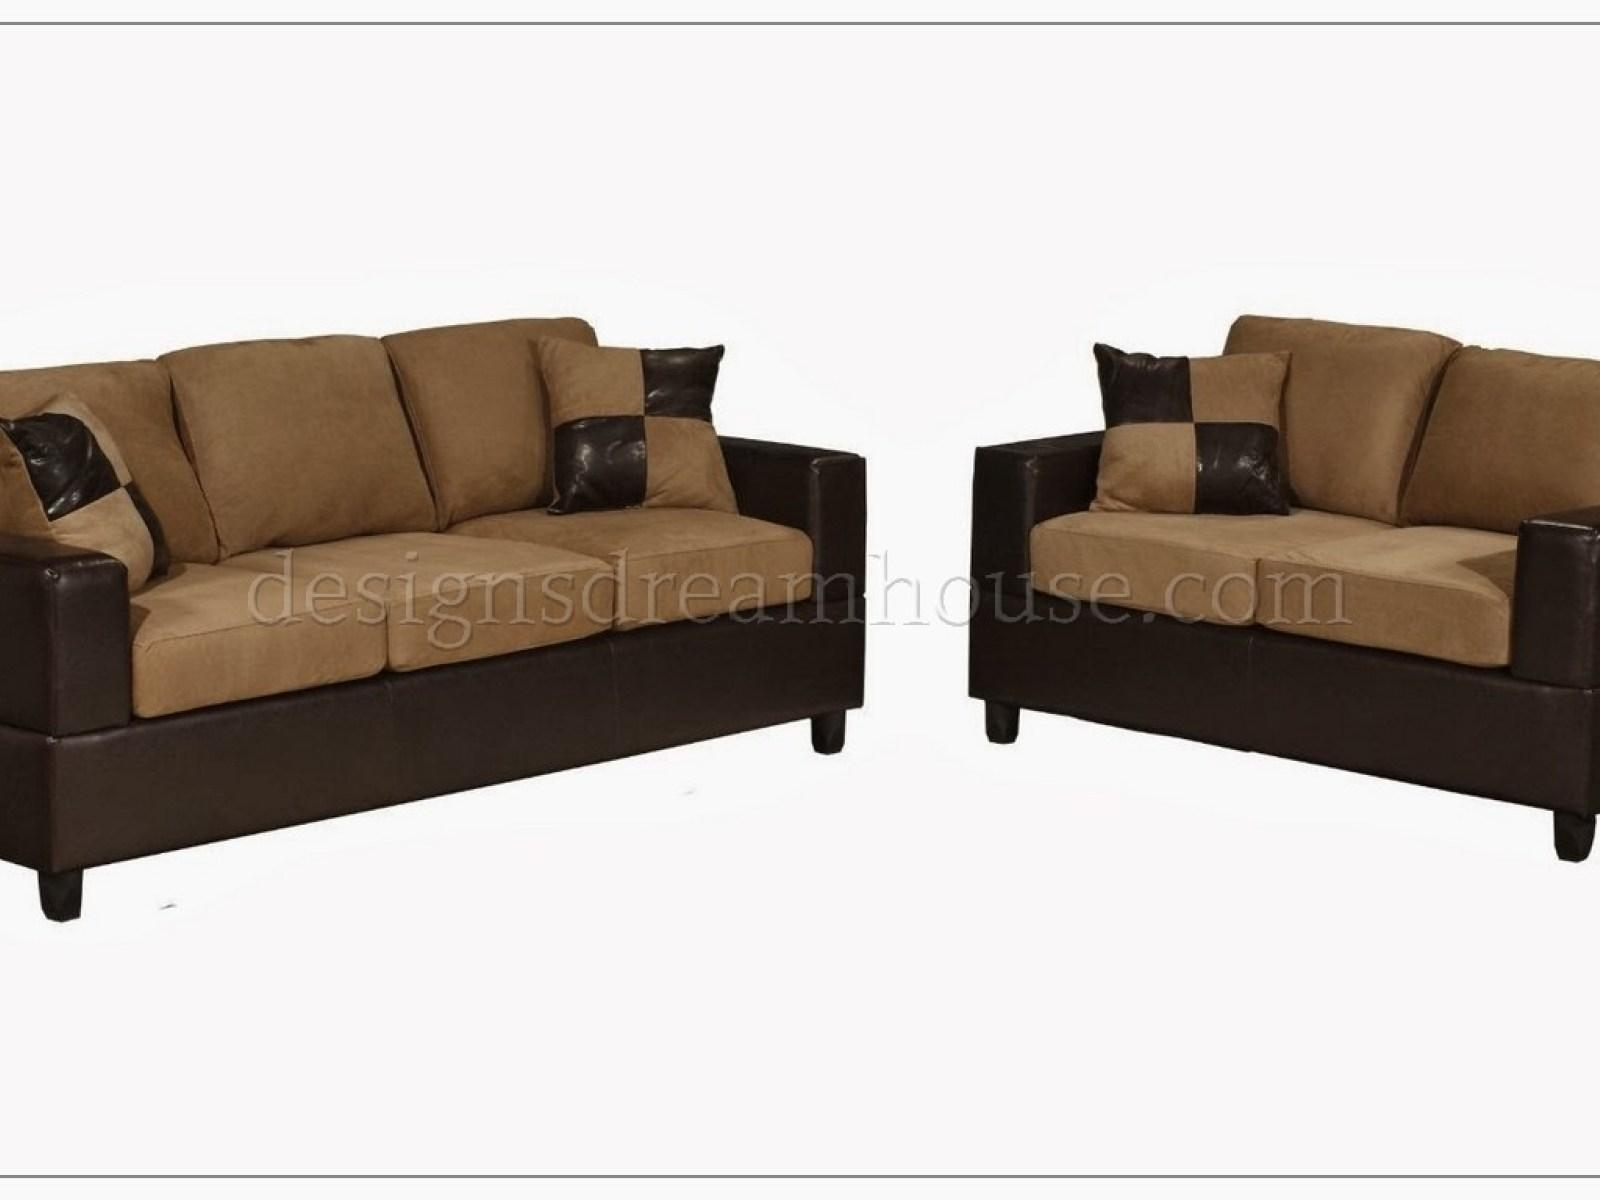 ▻ Sofa : 3 Deluxe Small Modern Sectional Sofa Modern Sofa Inside Small Modern Sofas (Image 2 of 20)